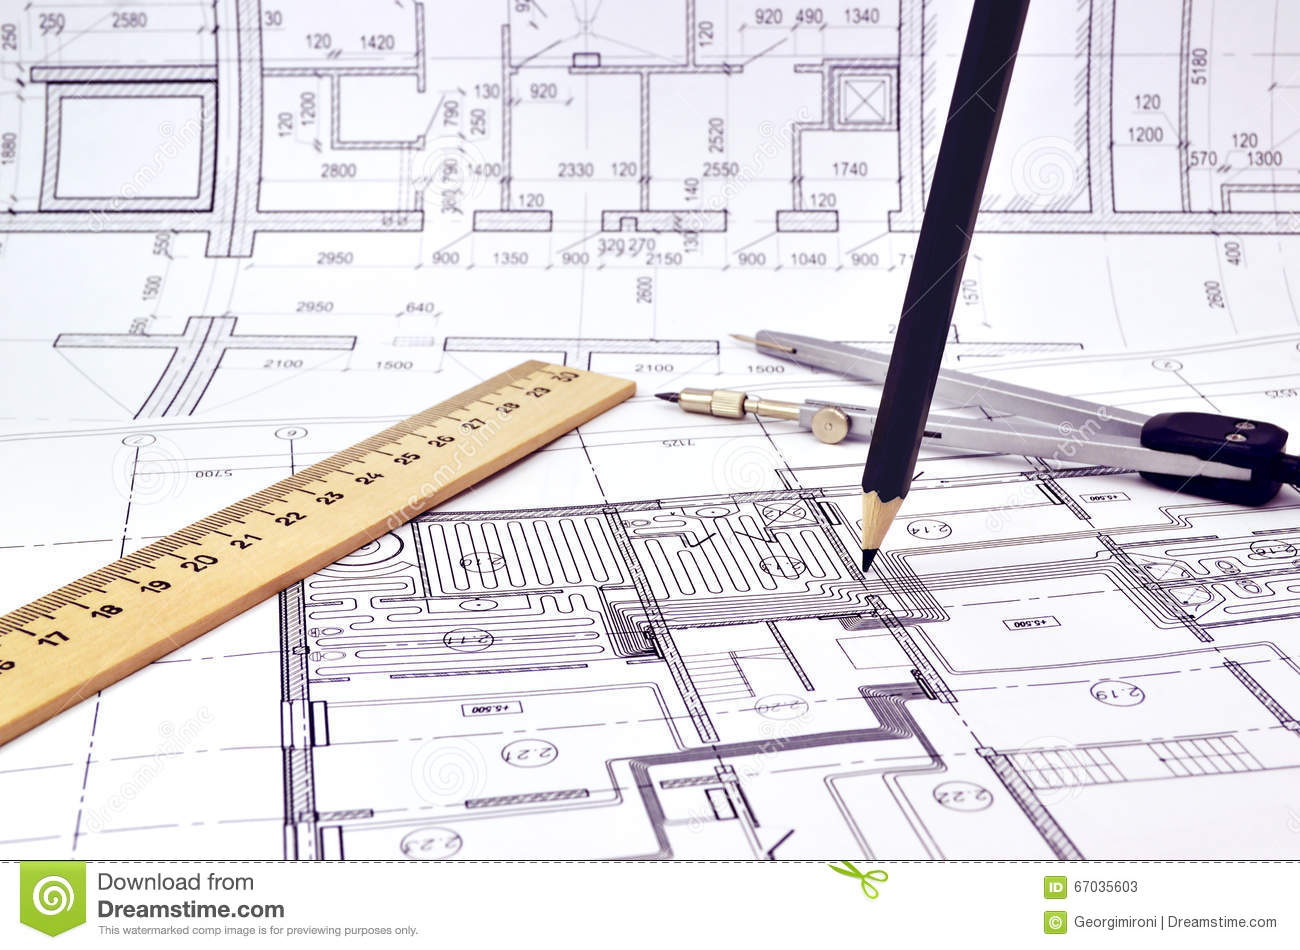 Drawing A Floor Plan Of The Building Stock Image - Image of ...